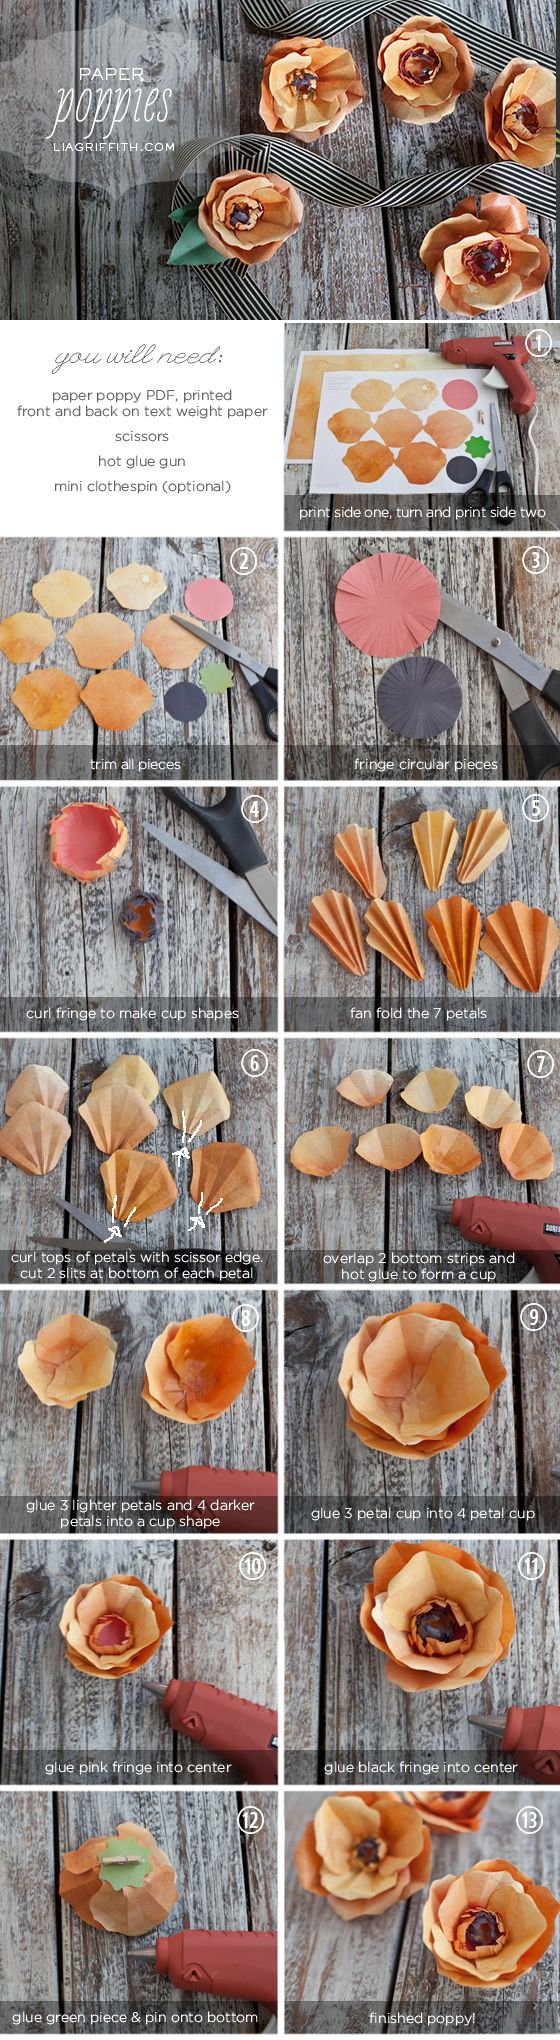 Make Some Paper Poppies